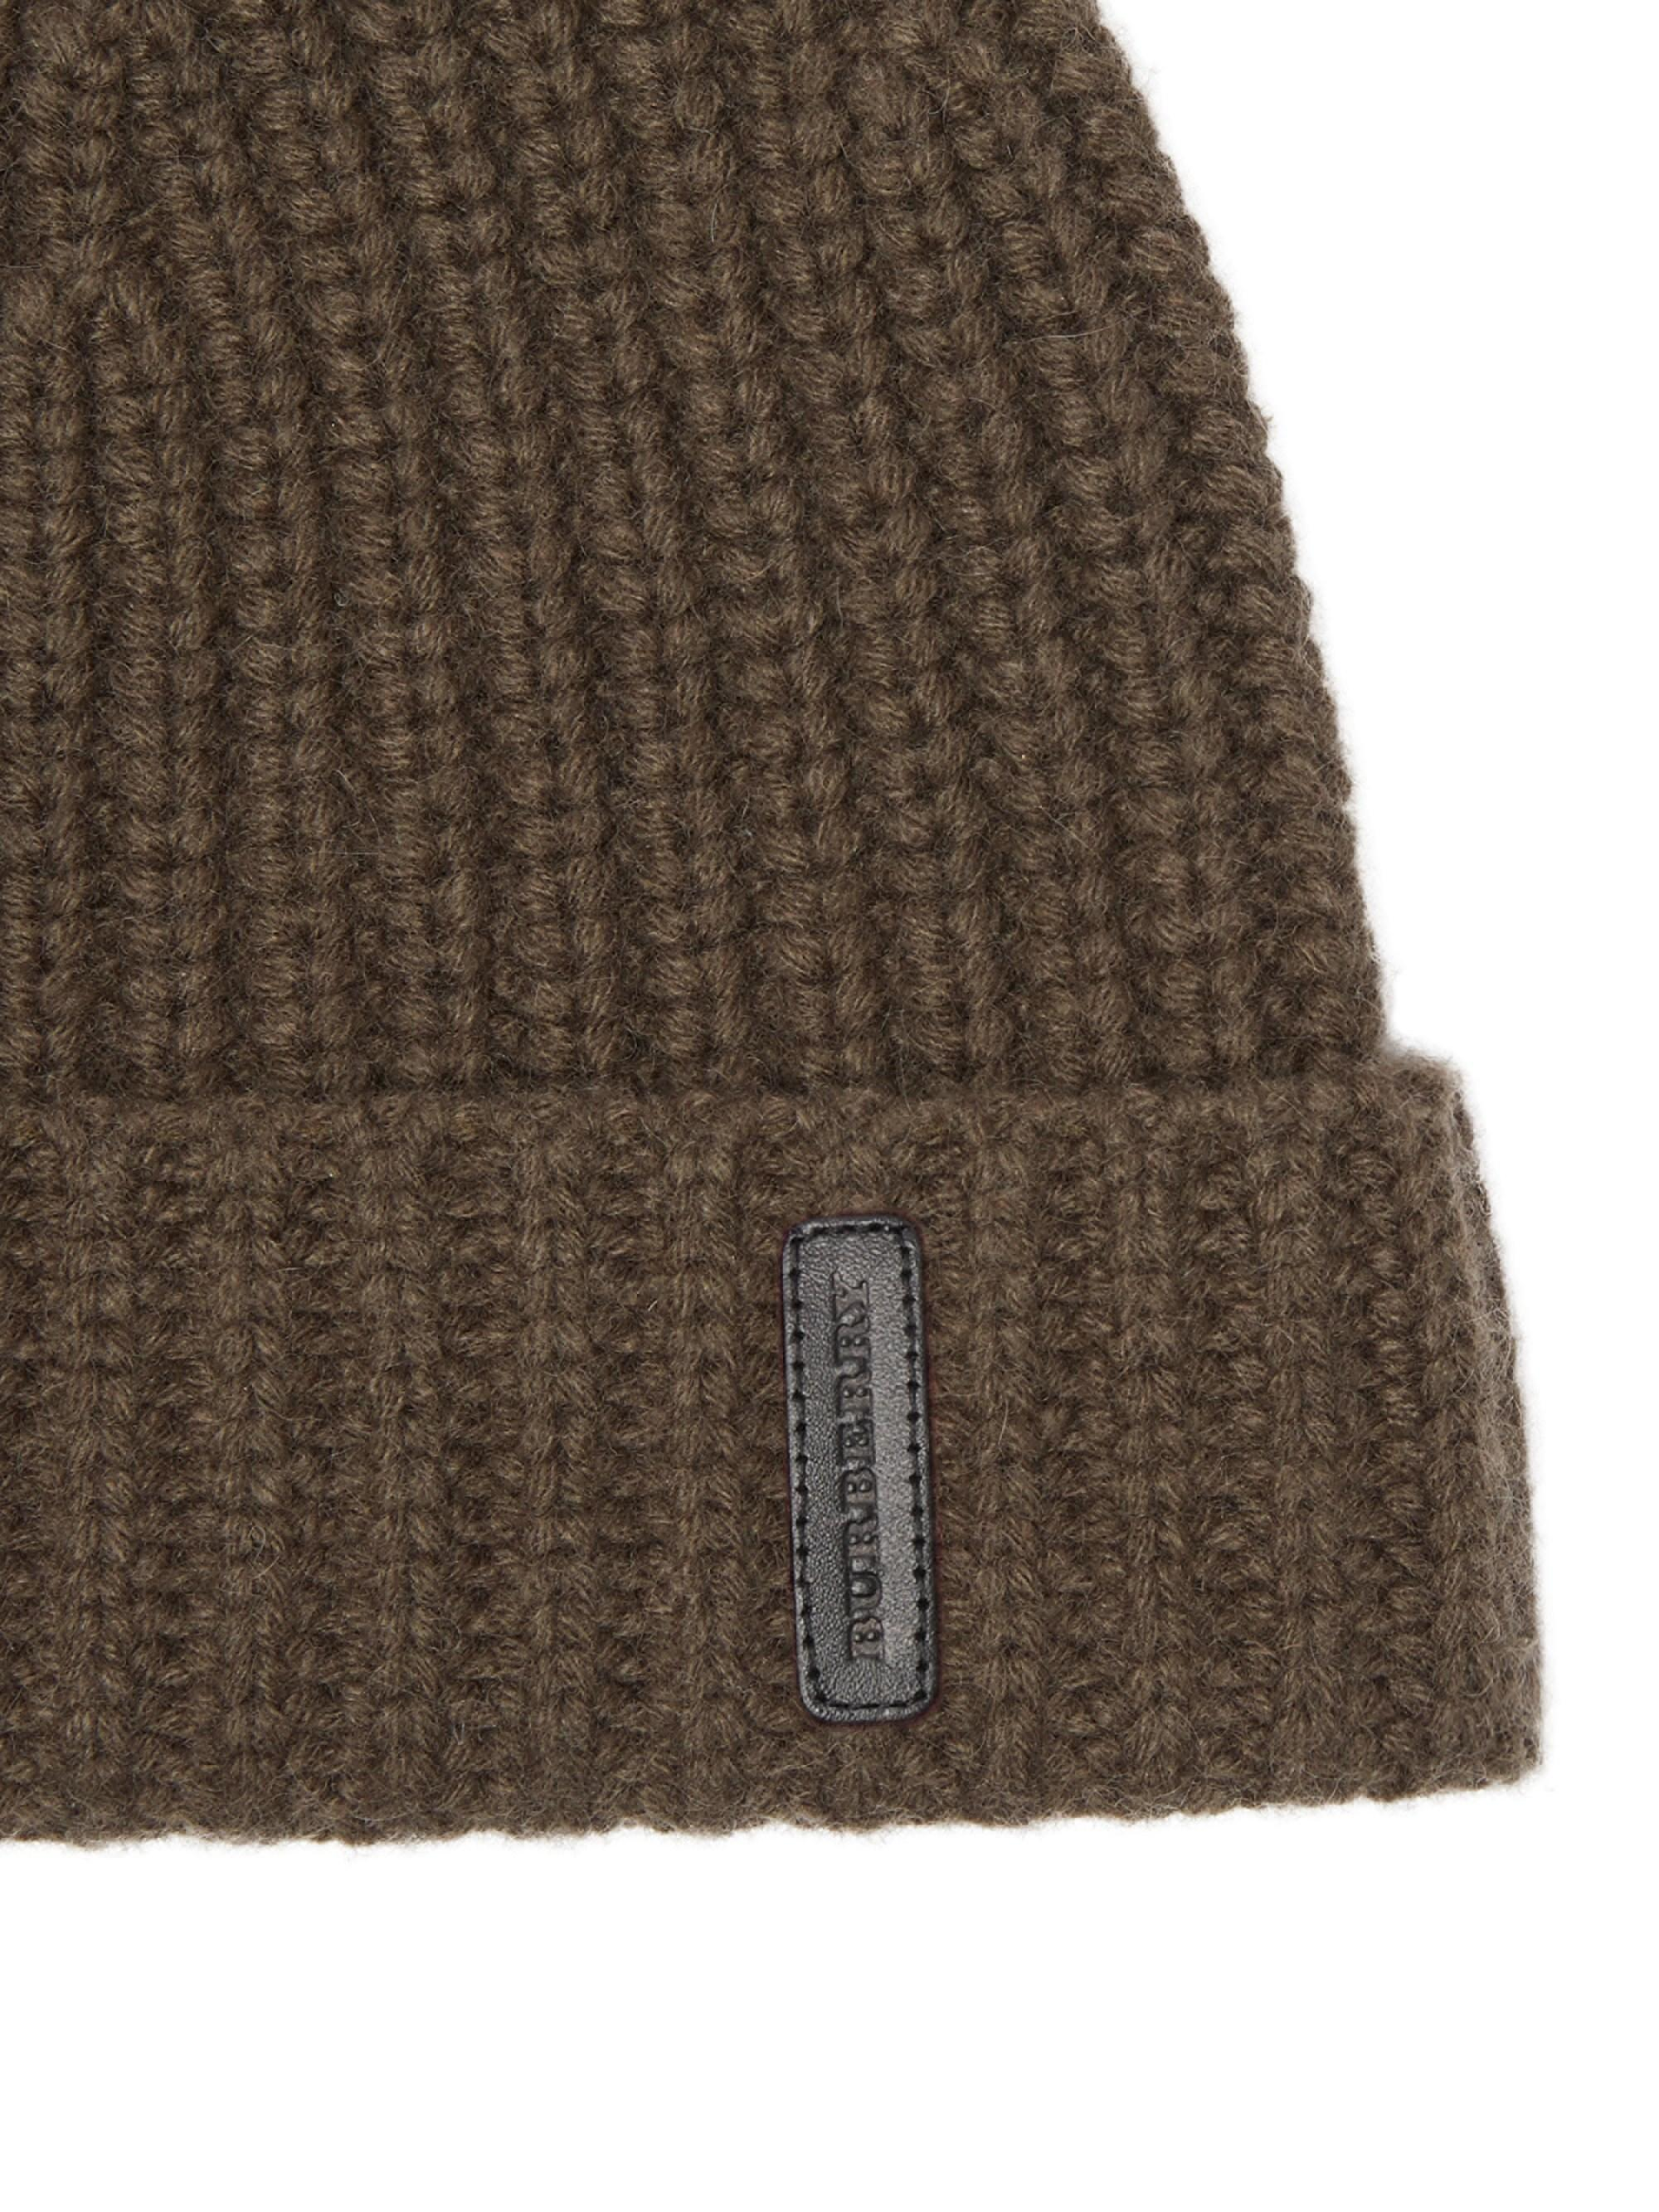 eb165a43d59 Lyst - Burberry Fisherman-knit Cashmere Beanie in Green for Men